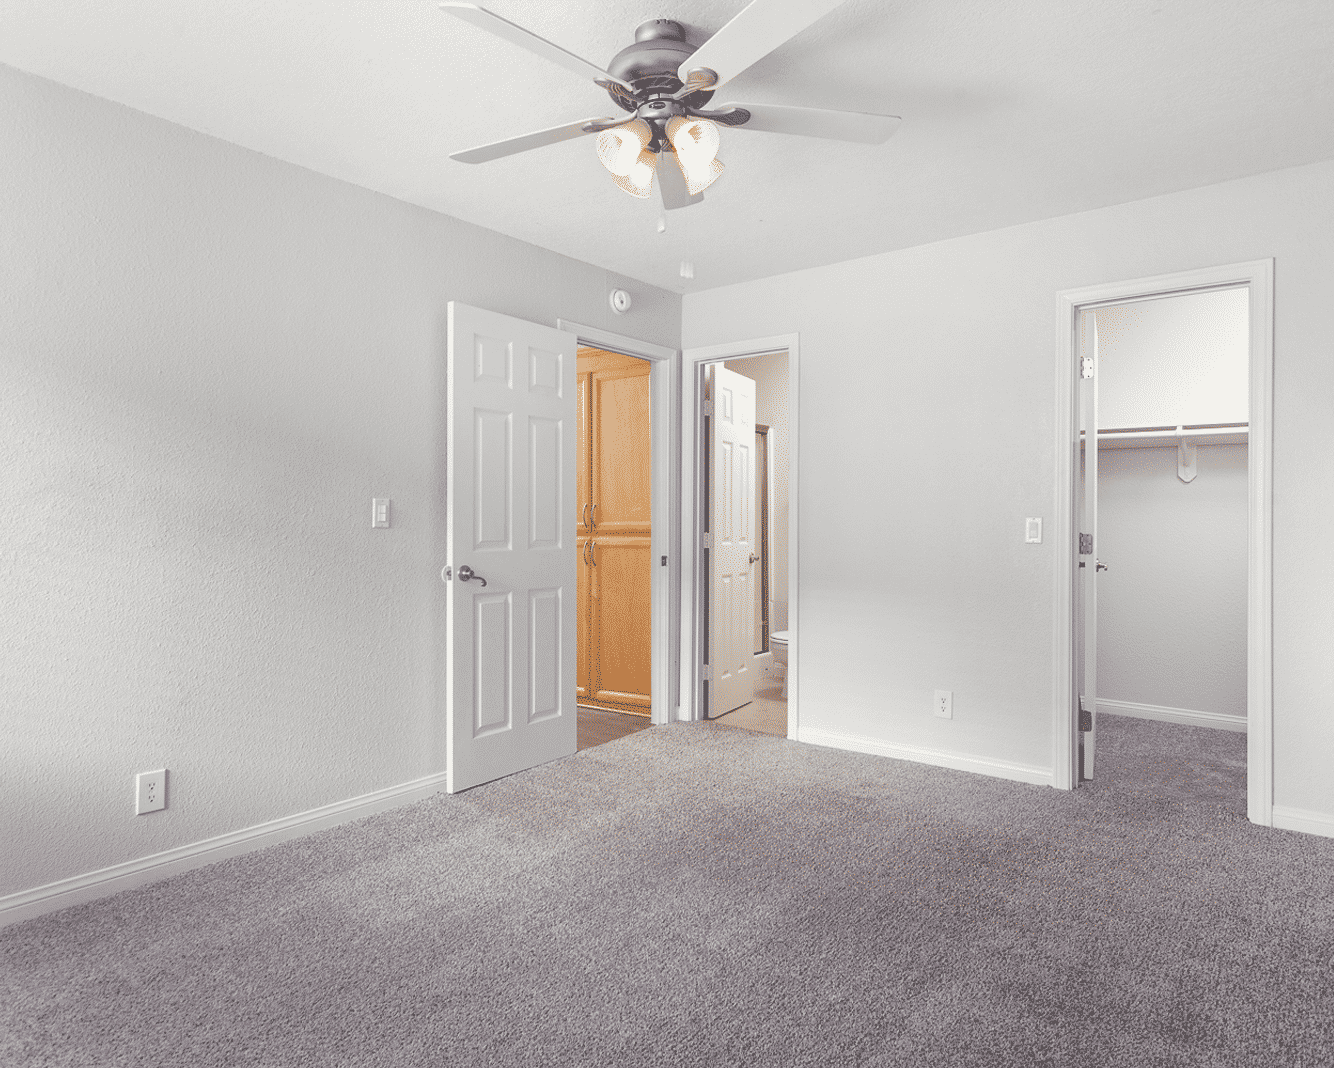 Carpeted bedroom with ceiling fan and big closet space